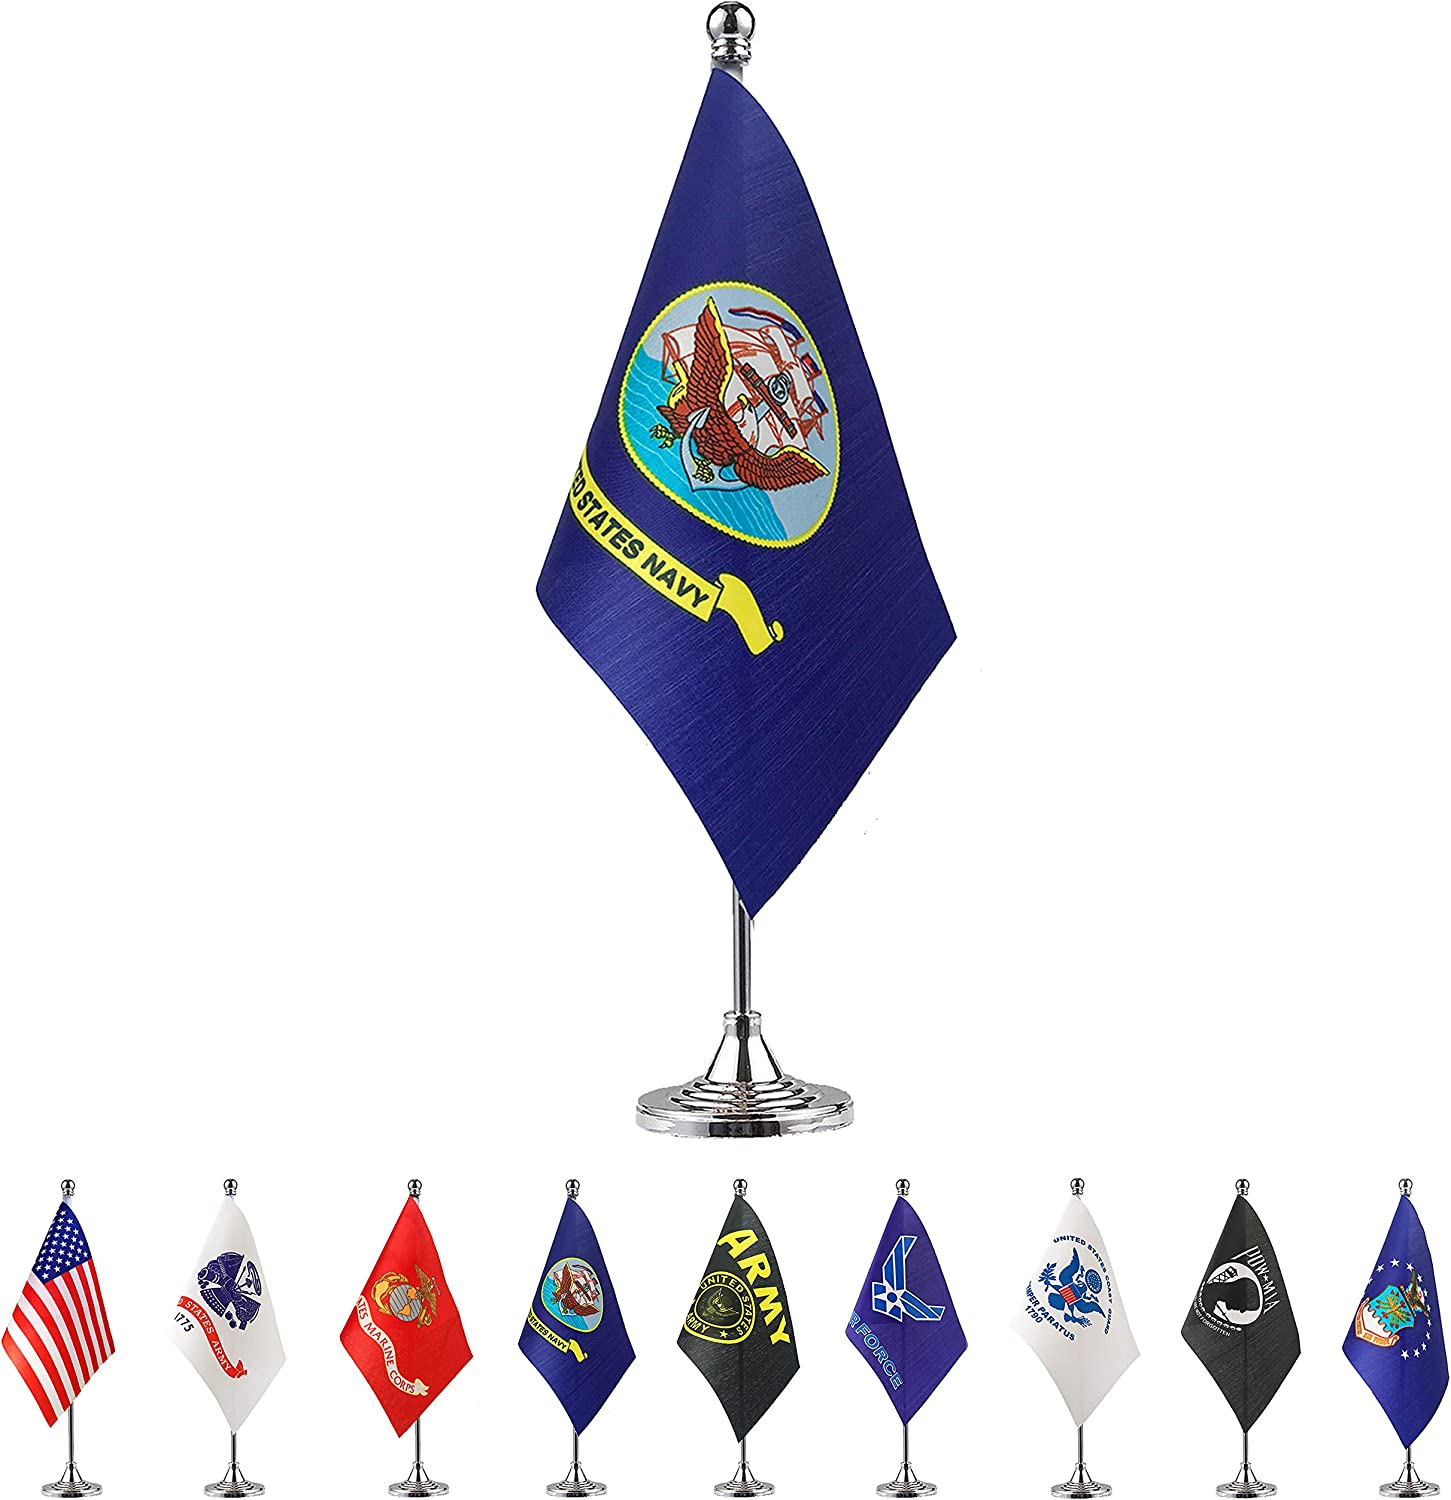 TSMD US Navy Desk Flag Small Mini United States Military Table Flags with Stand Base,Decorations Supplies for Army Party Events Celebration